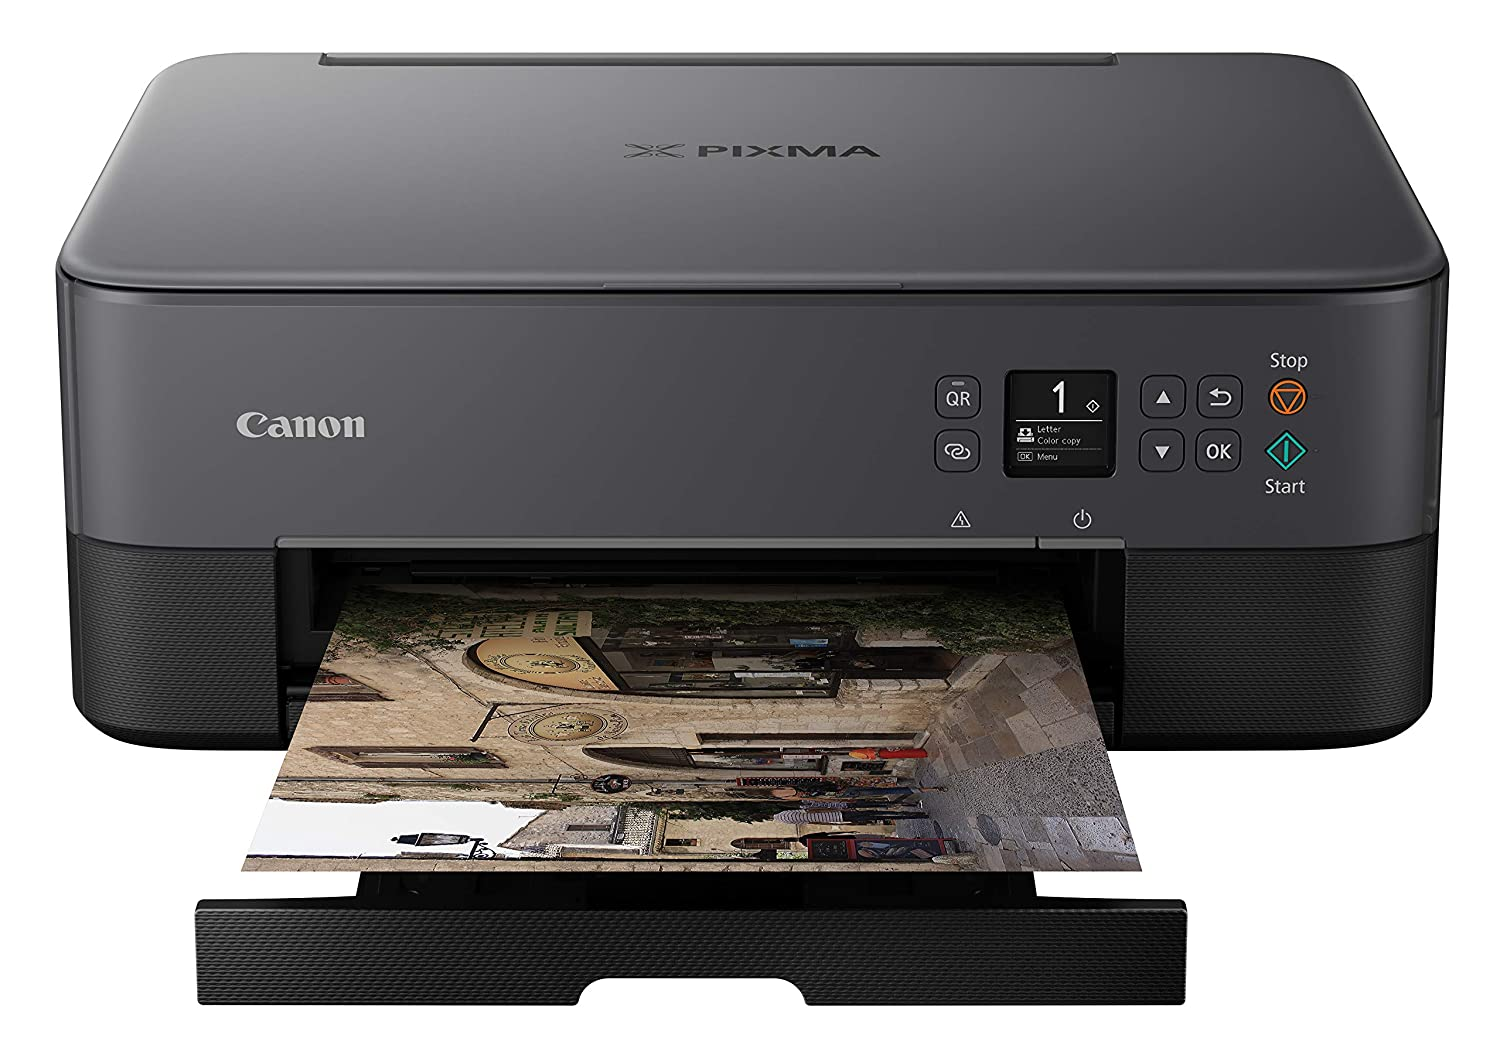 Canon Pixma TS5320 Wireless All In One Printer, Scanner, Copier with AirPrint, Black